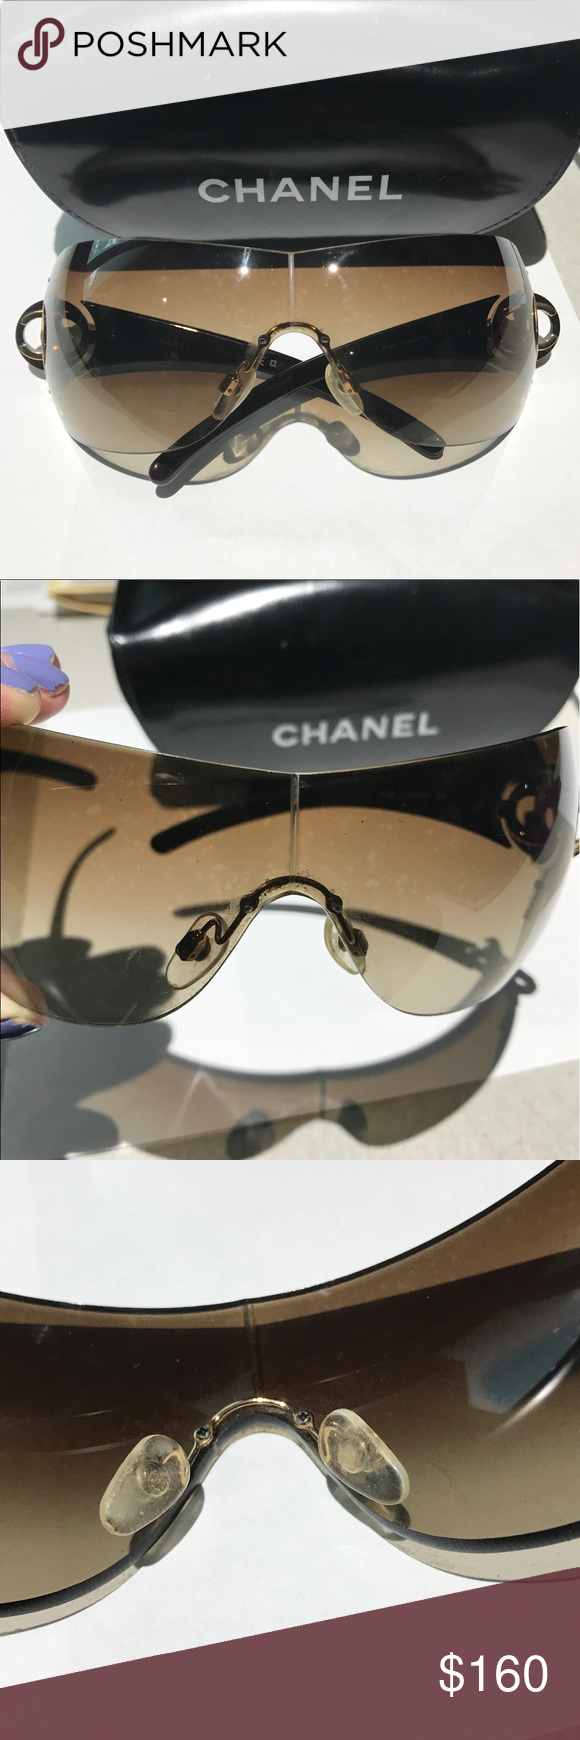 8cf209b4c1c Chanel 4145 Sunglasses Gradient Brown Lenses Chocolate frame size 01-34-115  Authentic 4145 349 13 plus case. The glasses and case are used I tried to  get ...